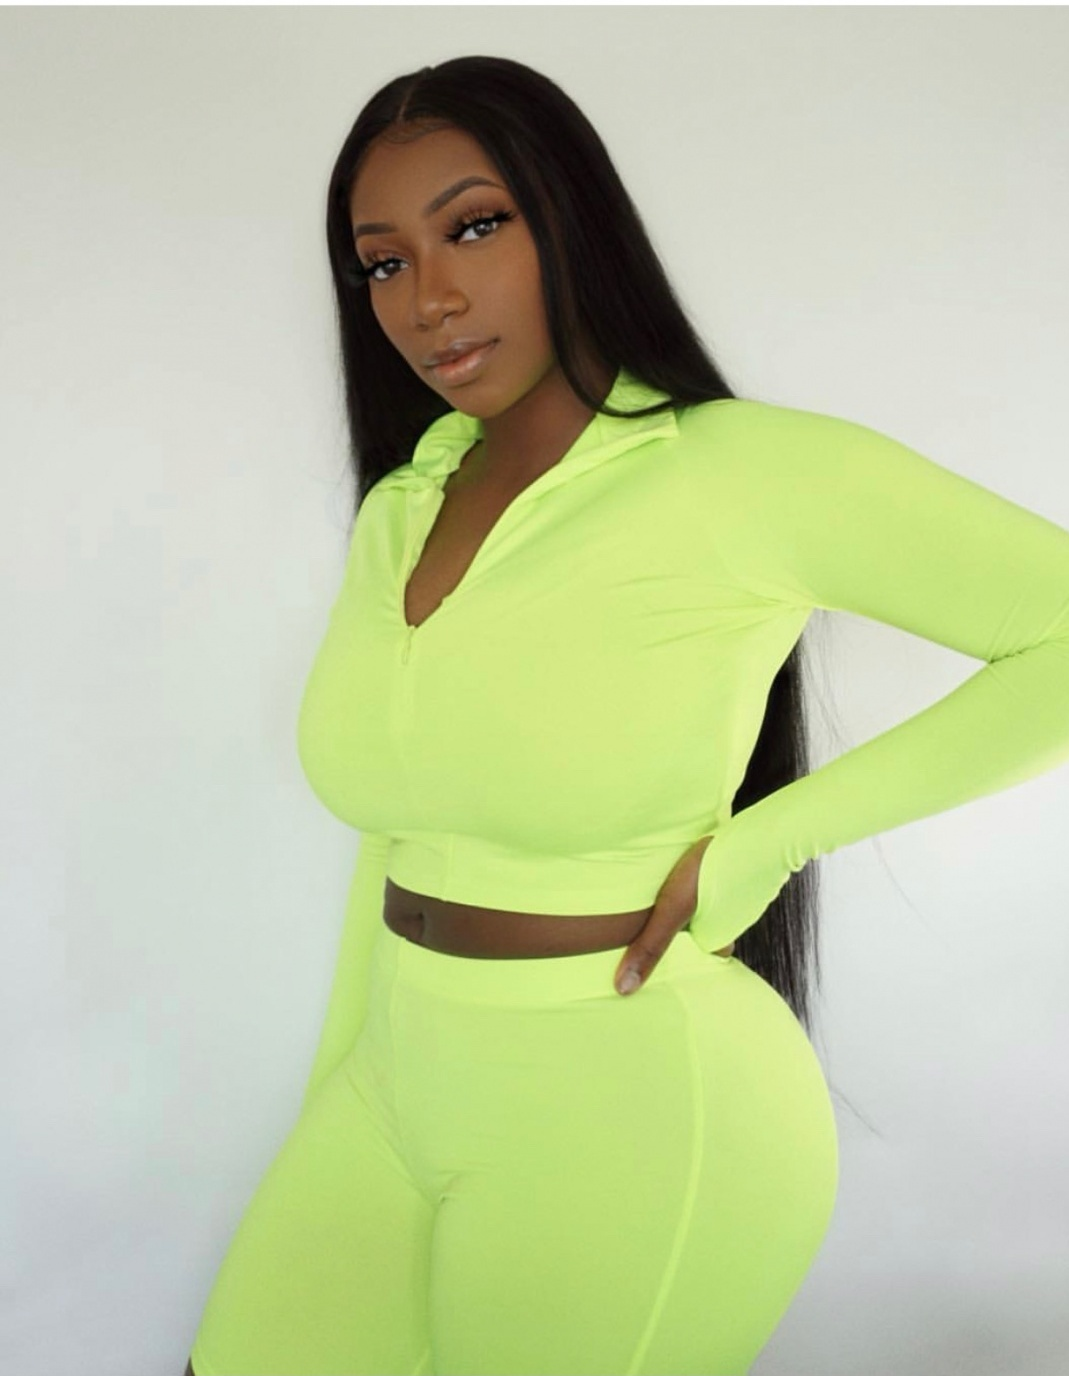 Image of a girl wearing a neon outfit